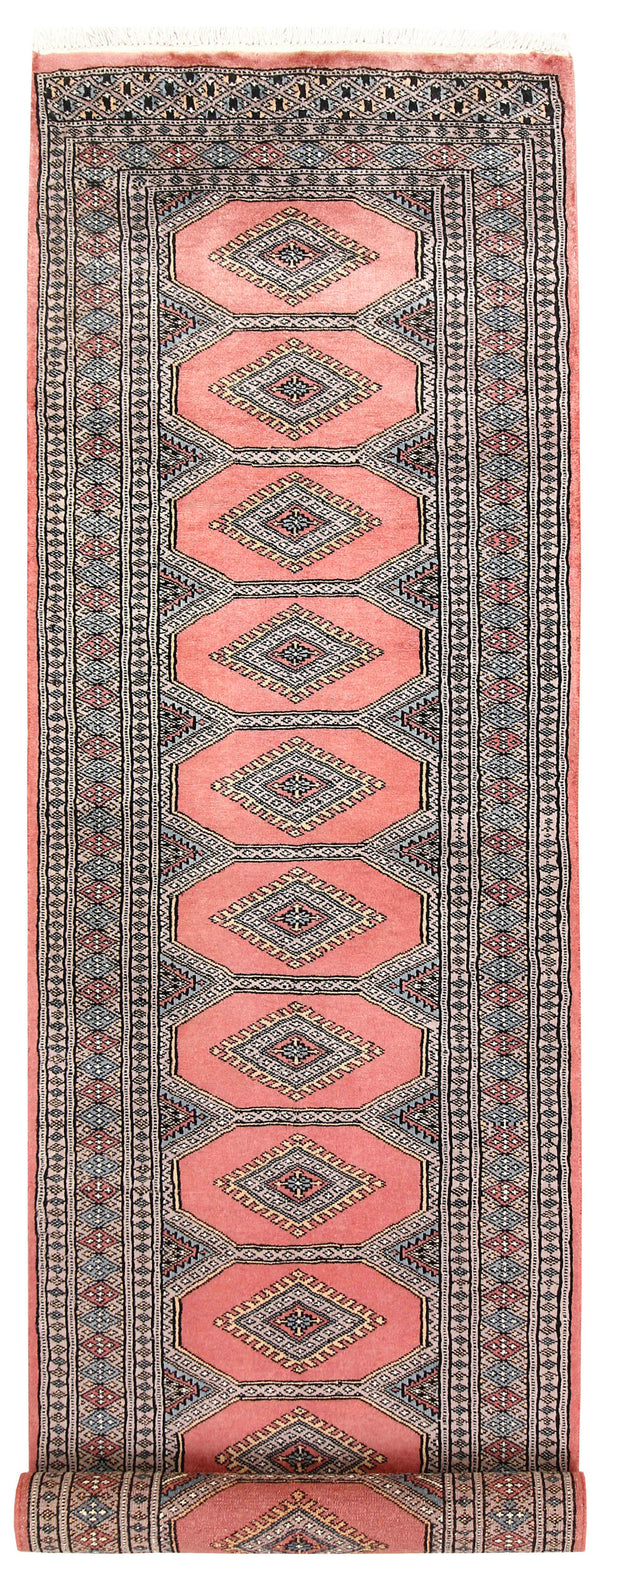 Light Salmon Jaldar 2' 4 x 9' 1 - No. 58954 - ALRUG Rug Store